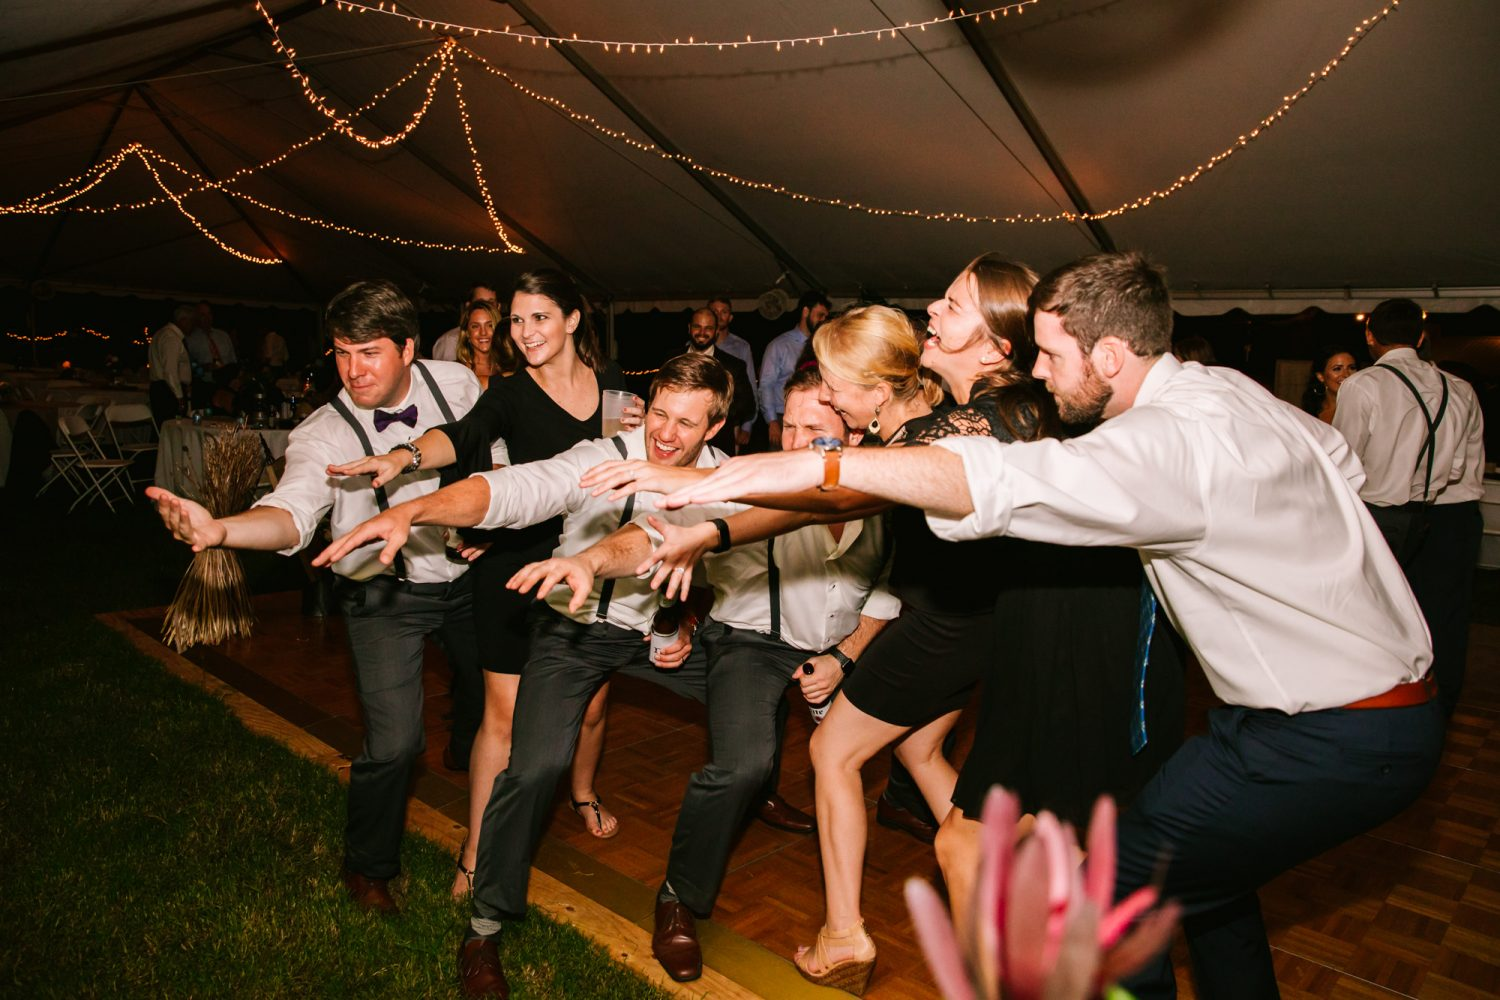 Waynesville, NC Wedding Photography | Wedding Reception Dance Floor Praising the Band